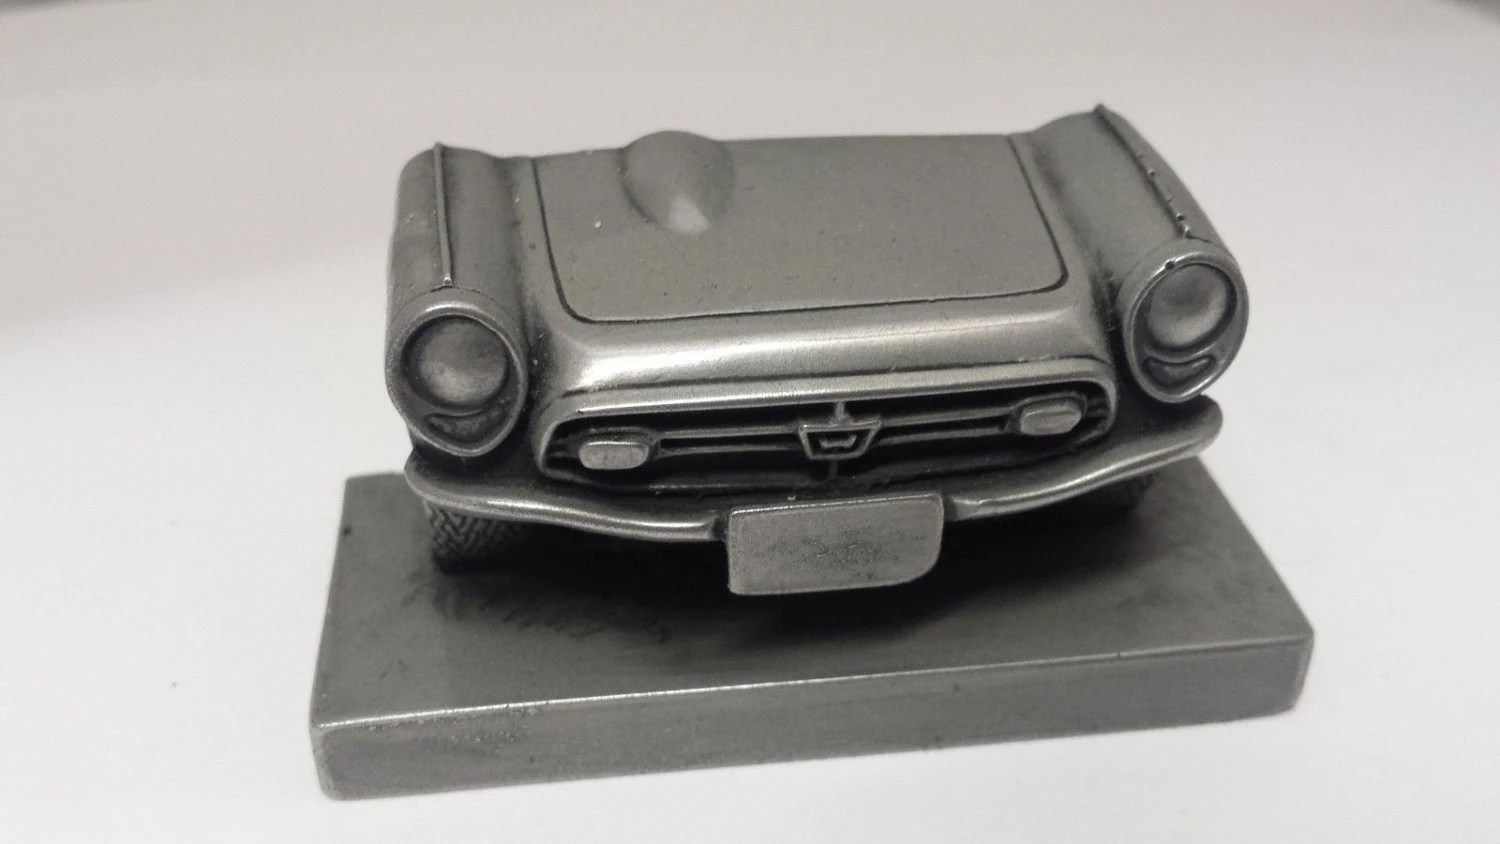 Pen Holders For Cars Honda S800 Pewter Effect Car Pen Holder Business Card Holder